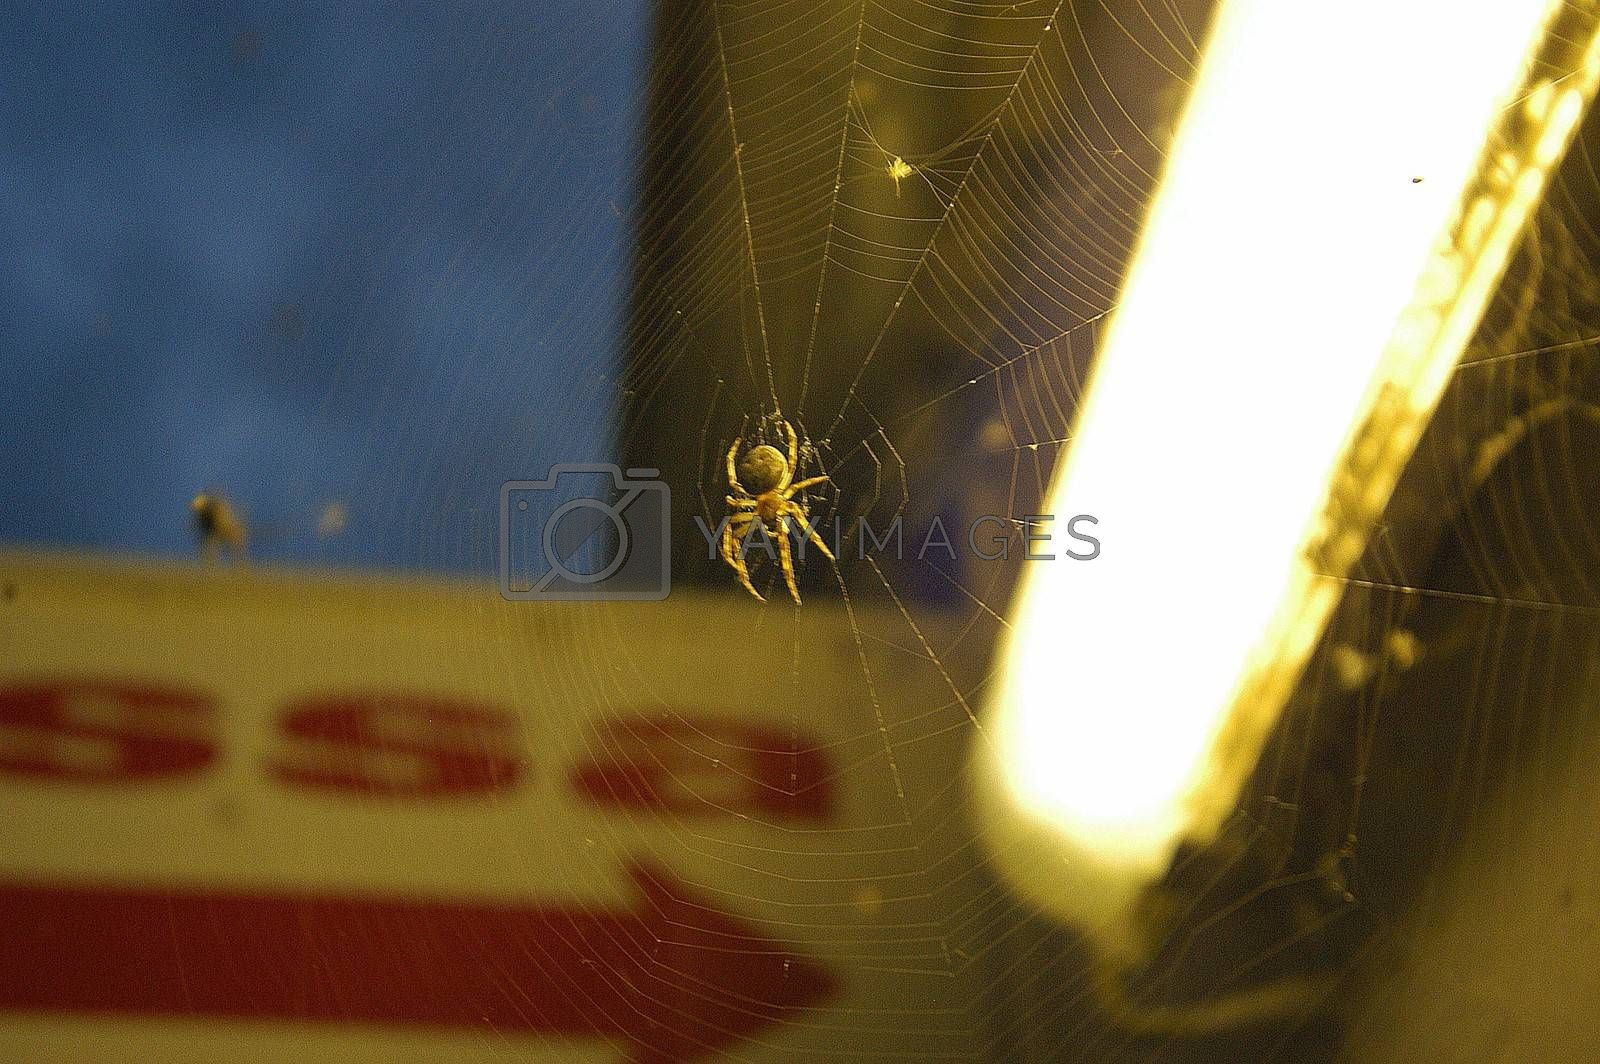 a spiderweb with the spider beneath a city light at night